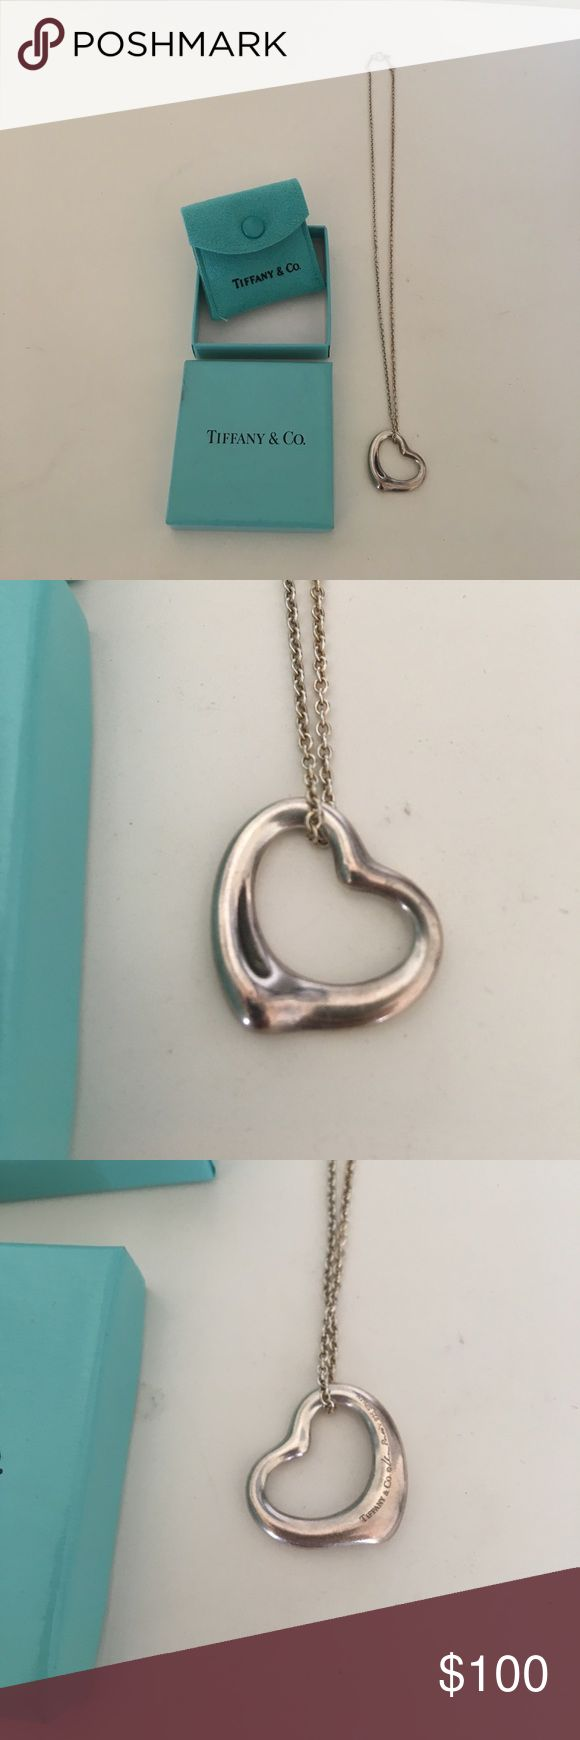 Tiffany heart necklace Sterling silver signature Tiffany heart necklace. With box and pouch. Tiffany & Co. Jewelry Necklaces